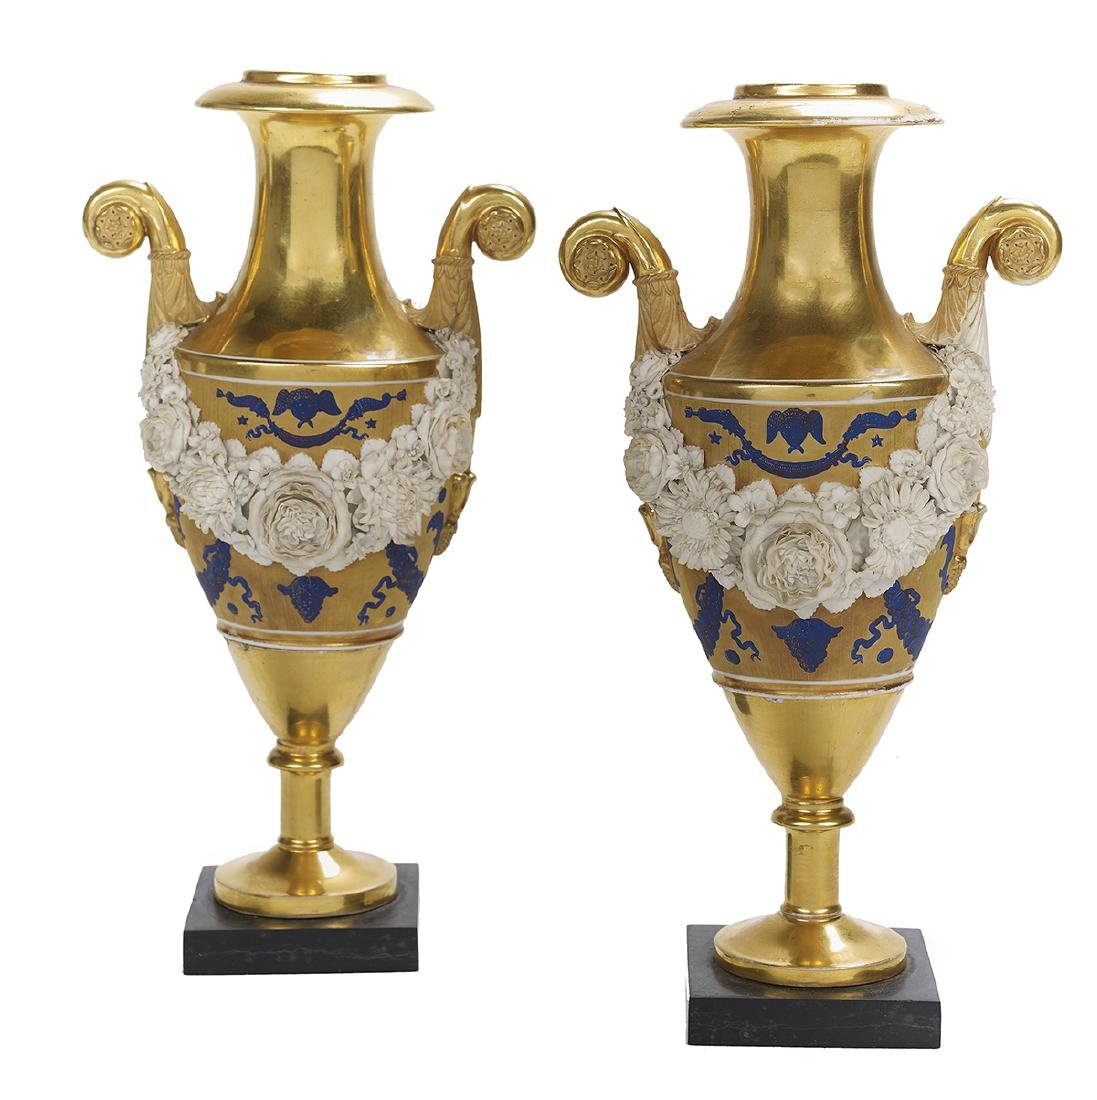 Pair of Paris Porcelain Urns Attributed to Dagoty